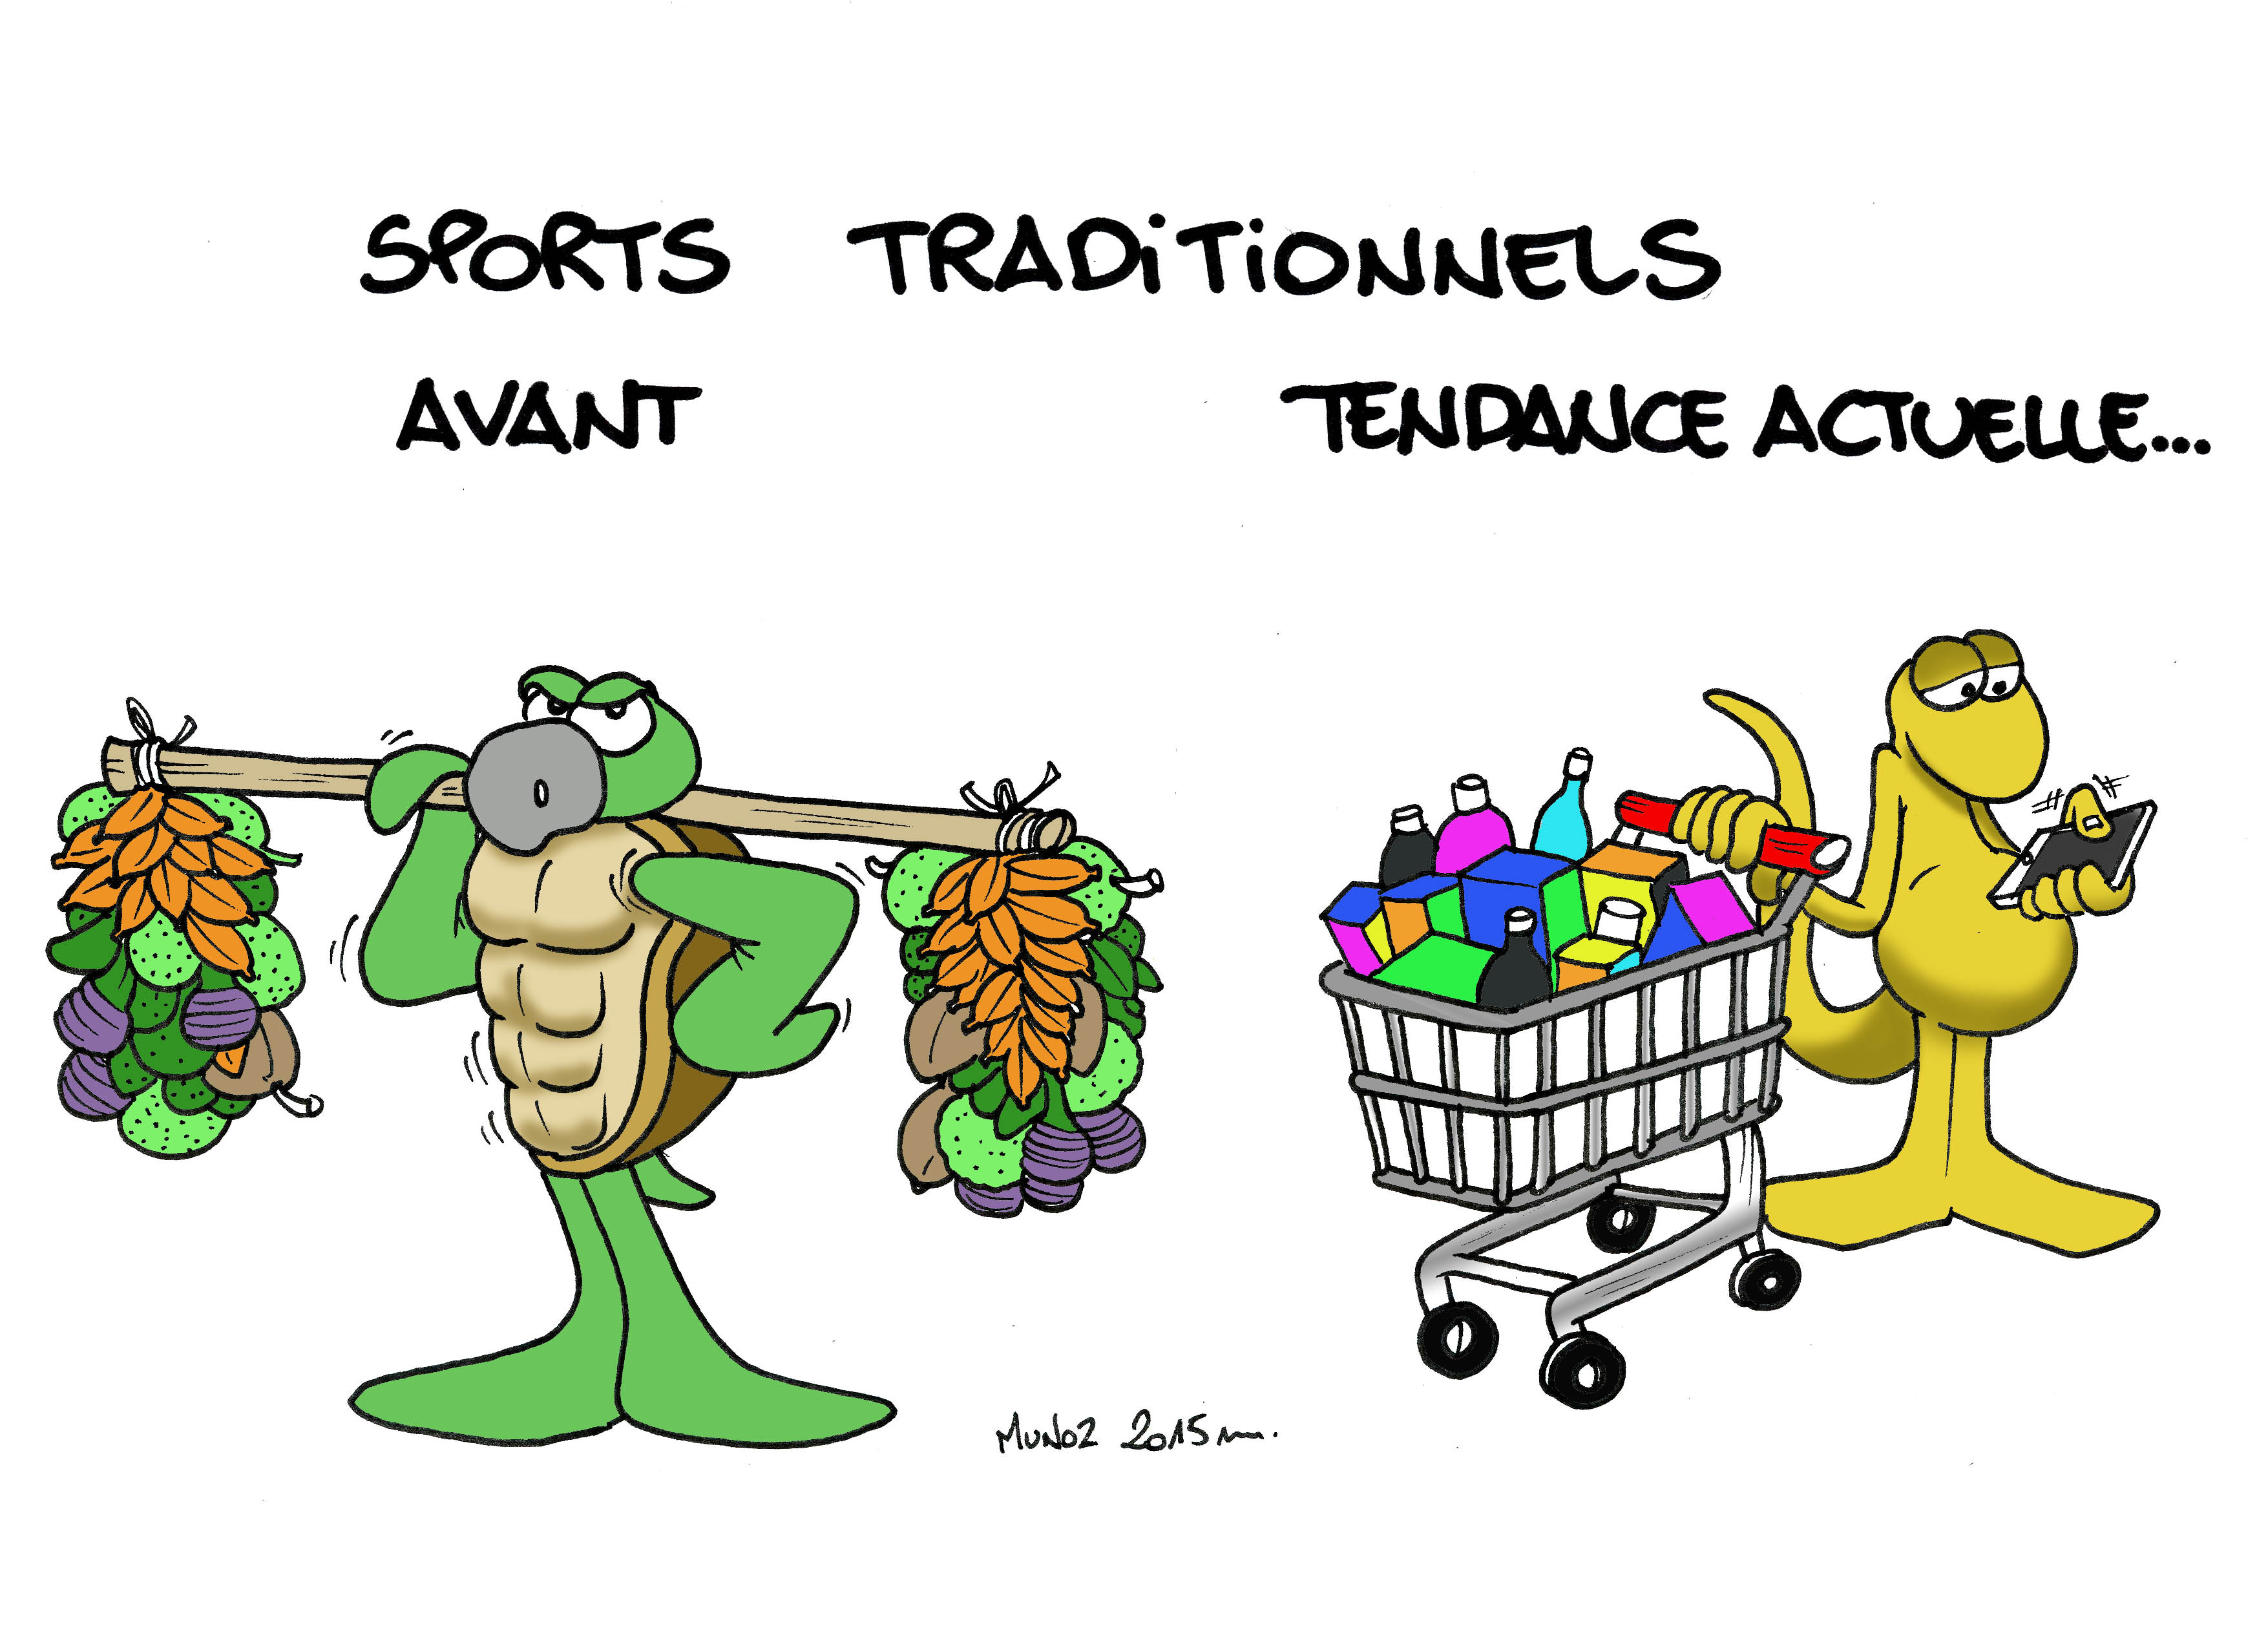 """Sports traditionnels"" vu par Munoz"